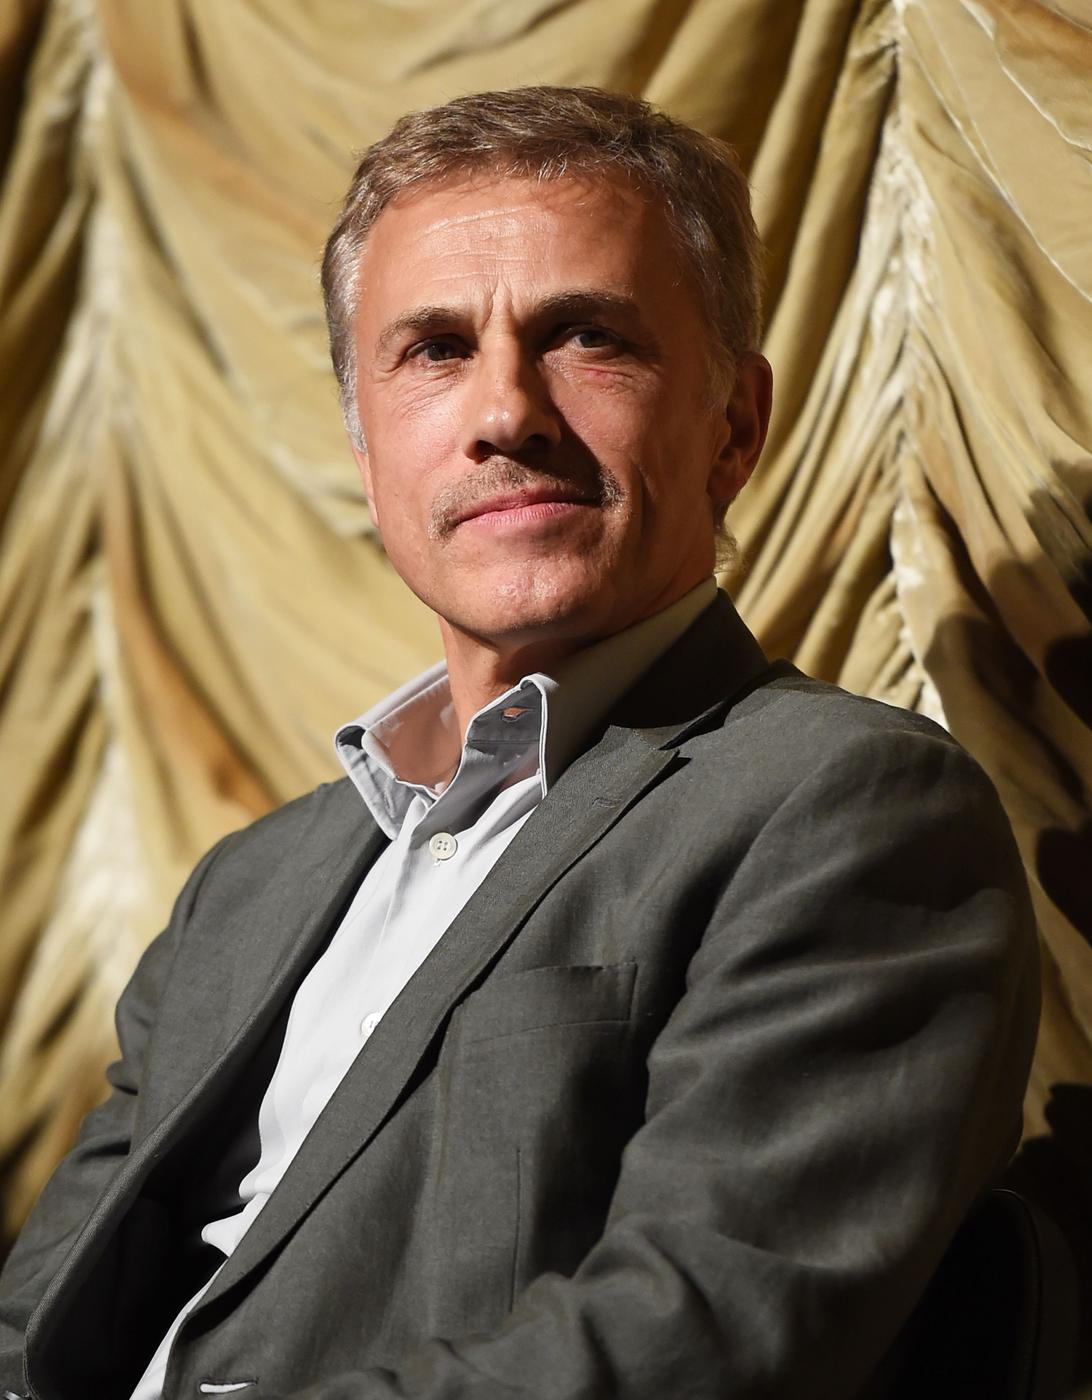 Acting legend Christoph Waltz set to play a 'nemesis of sorts' in Bond 24?